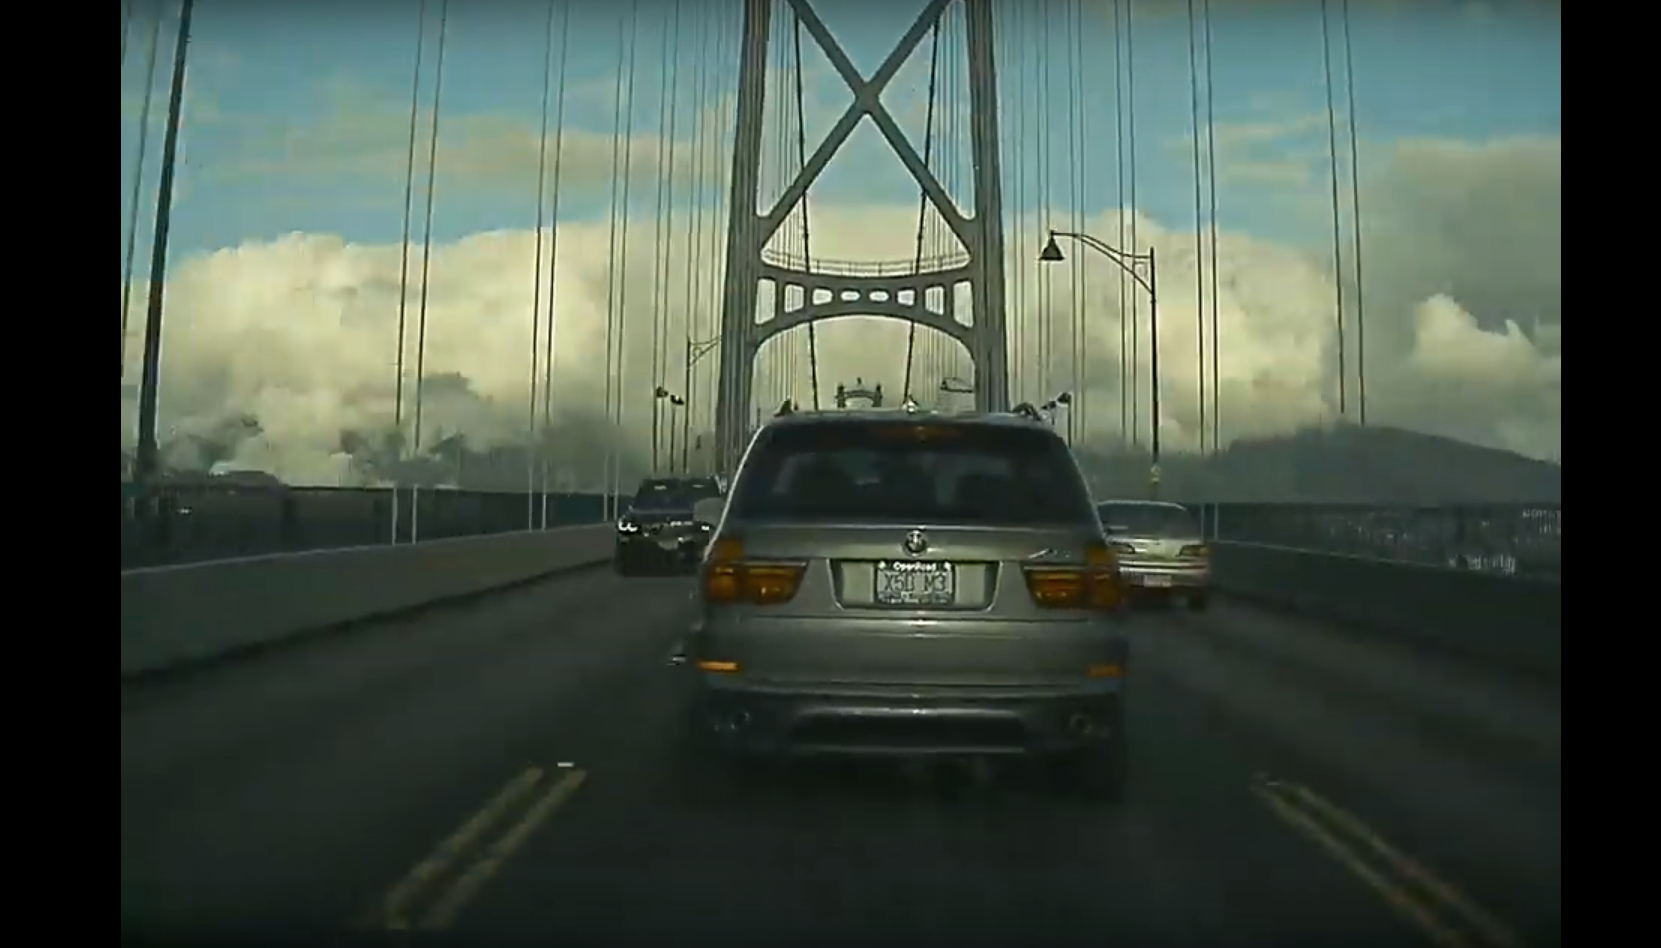 BMW X5 Lions Gate Bridge Tesla